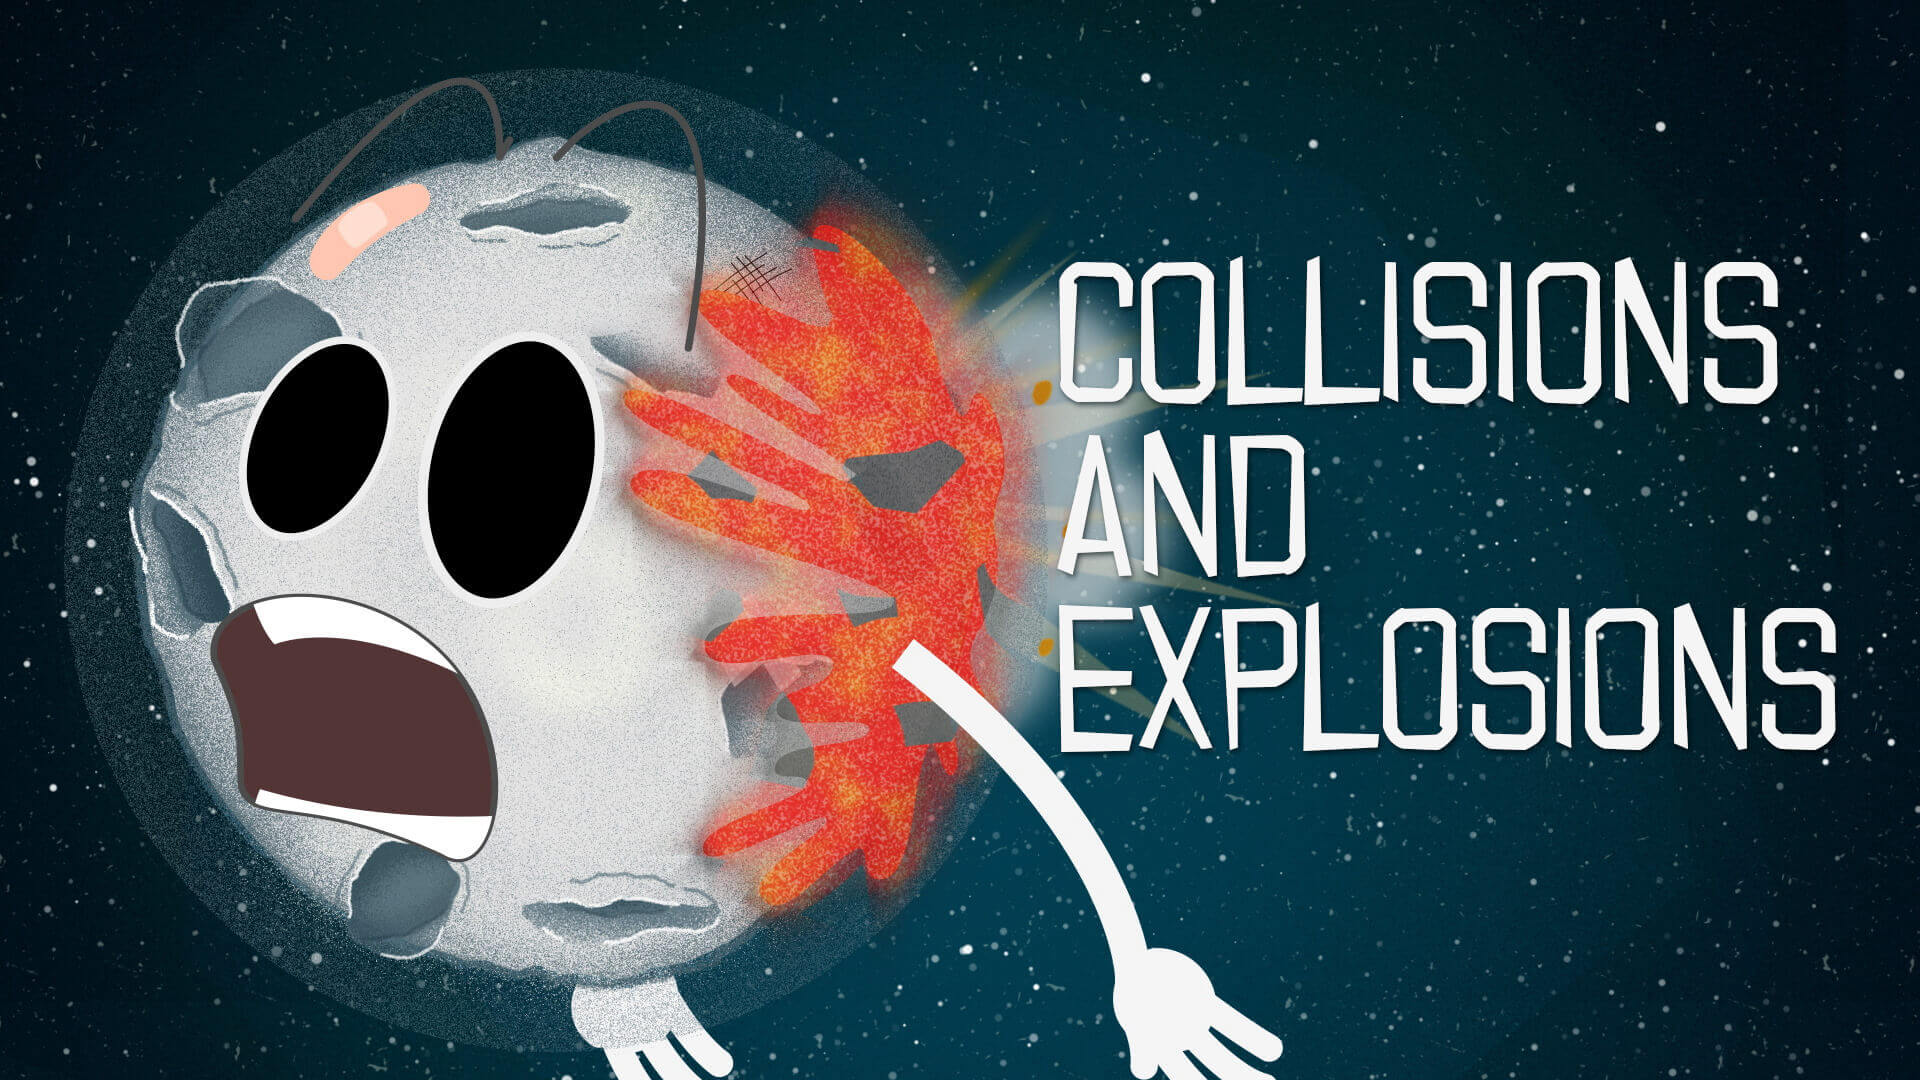 Education animation for children for Royal Observatory Greenwich - Collisions and Explosions